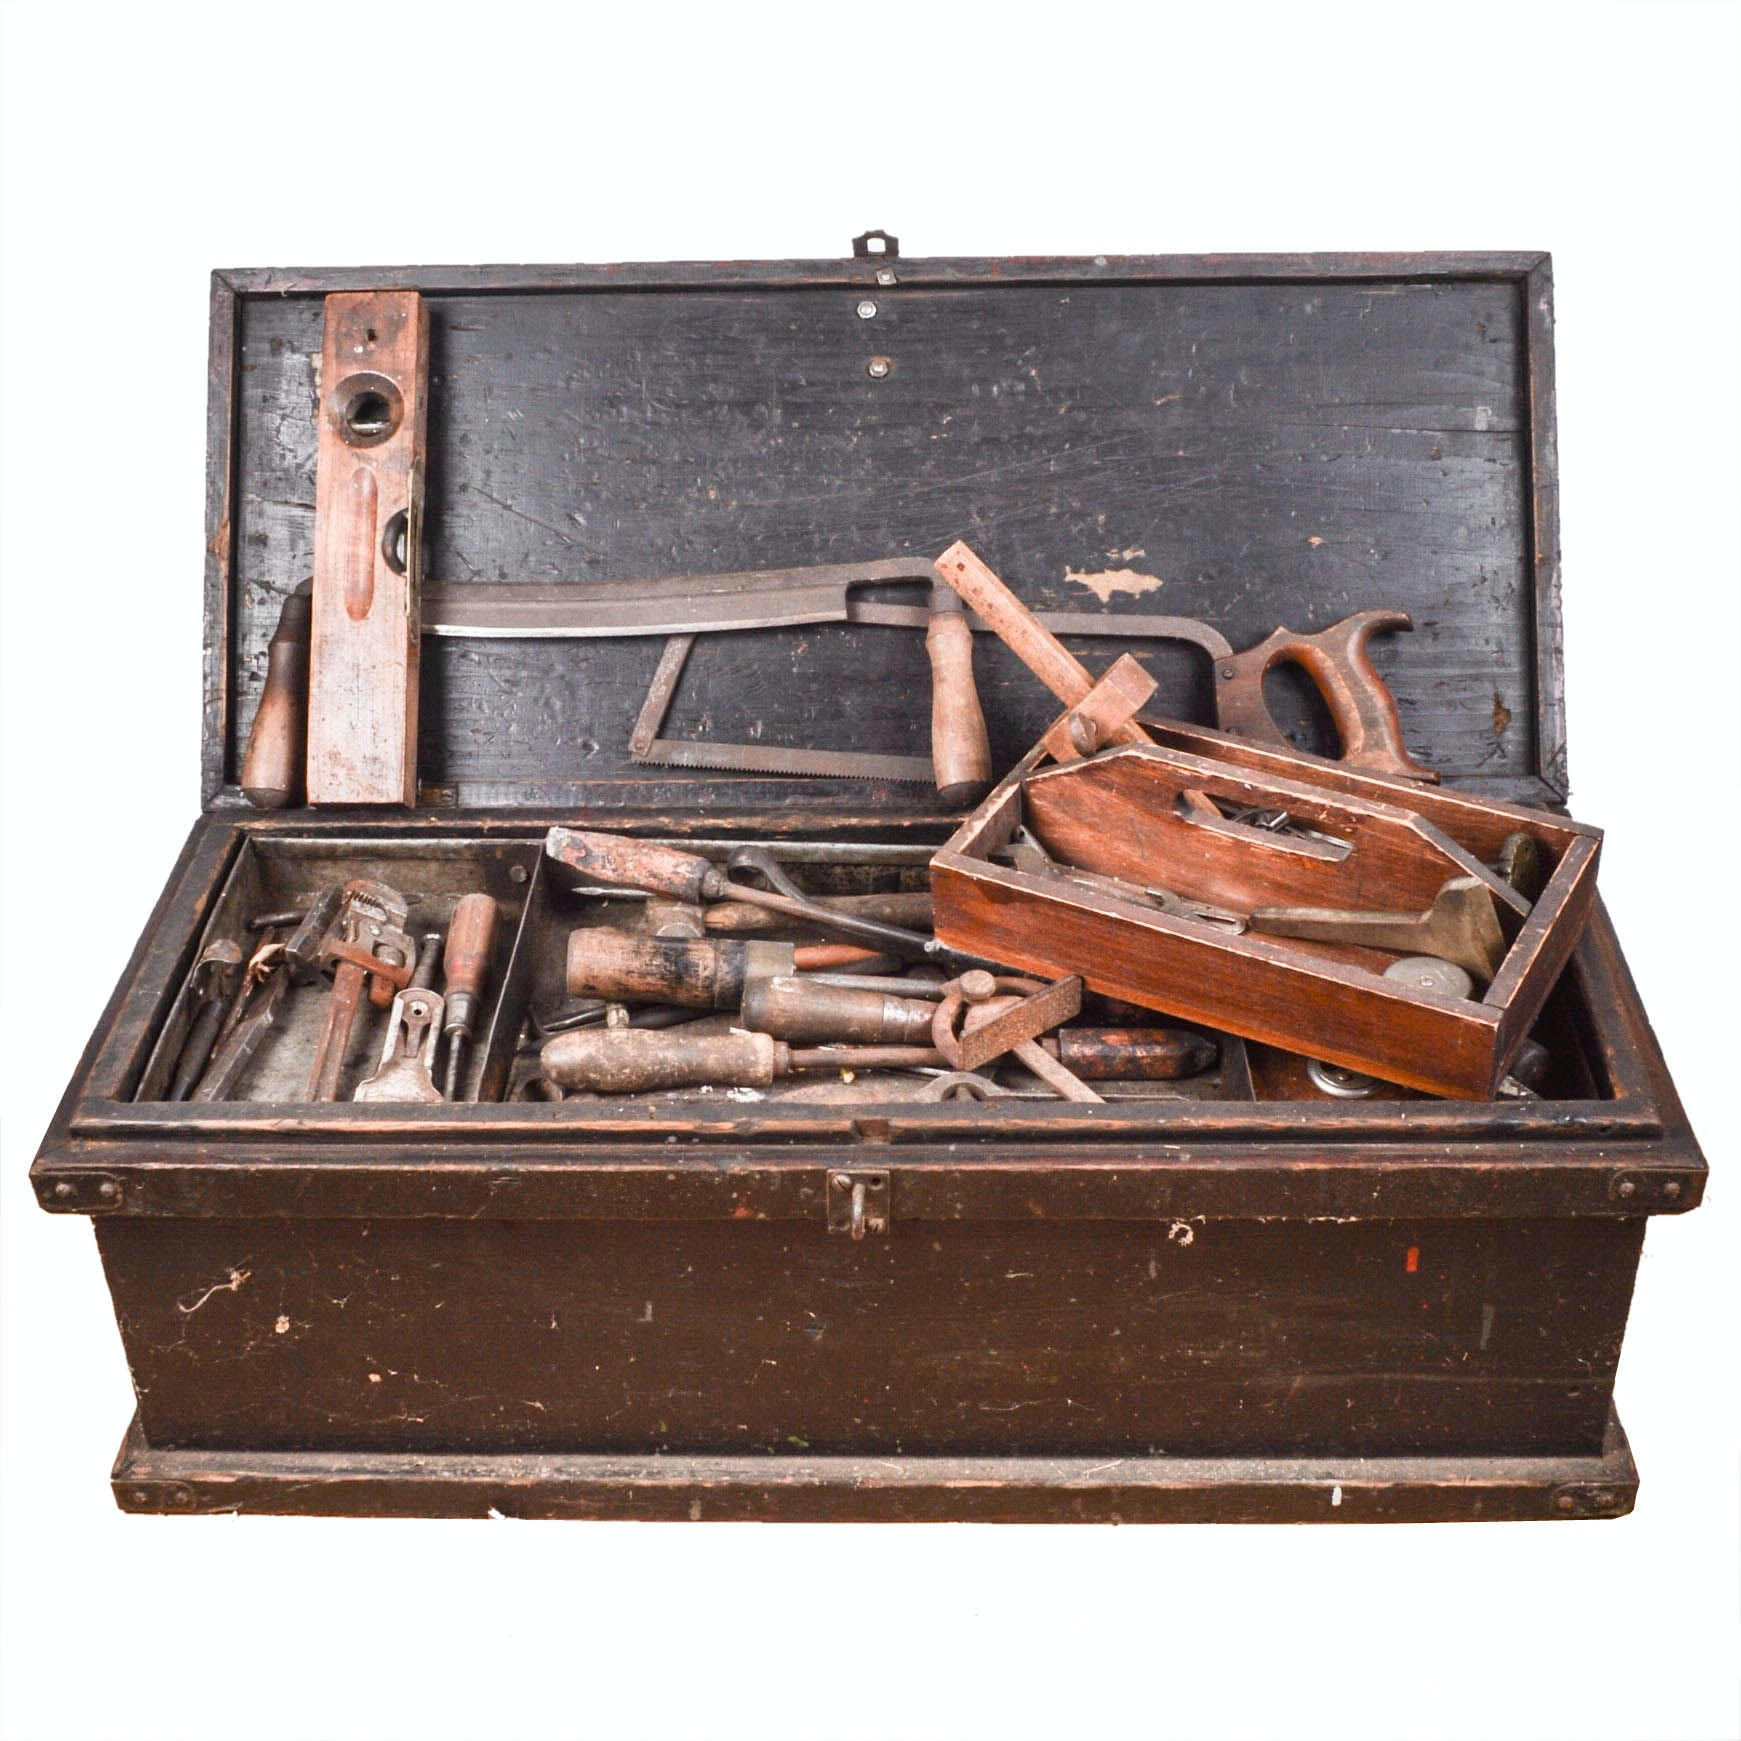 Antique Tool Chest with Tools